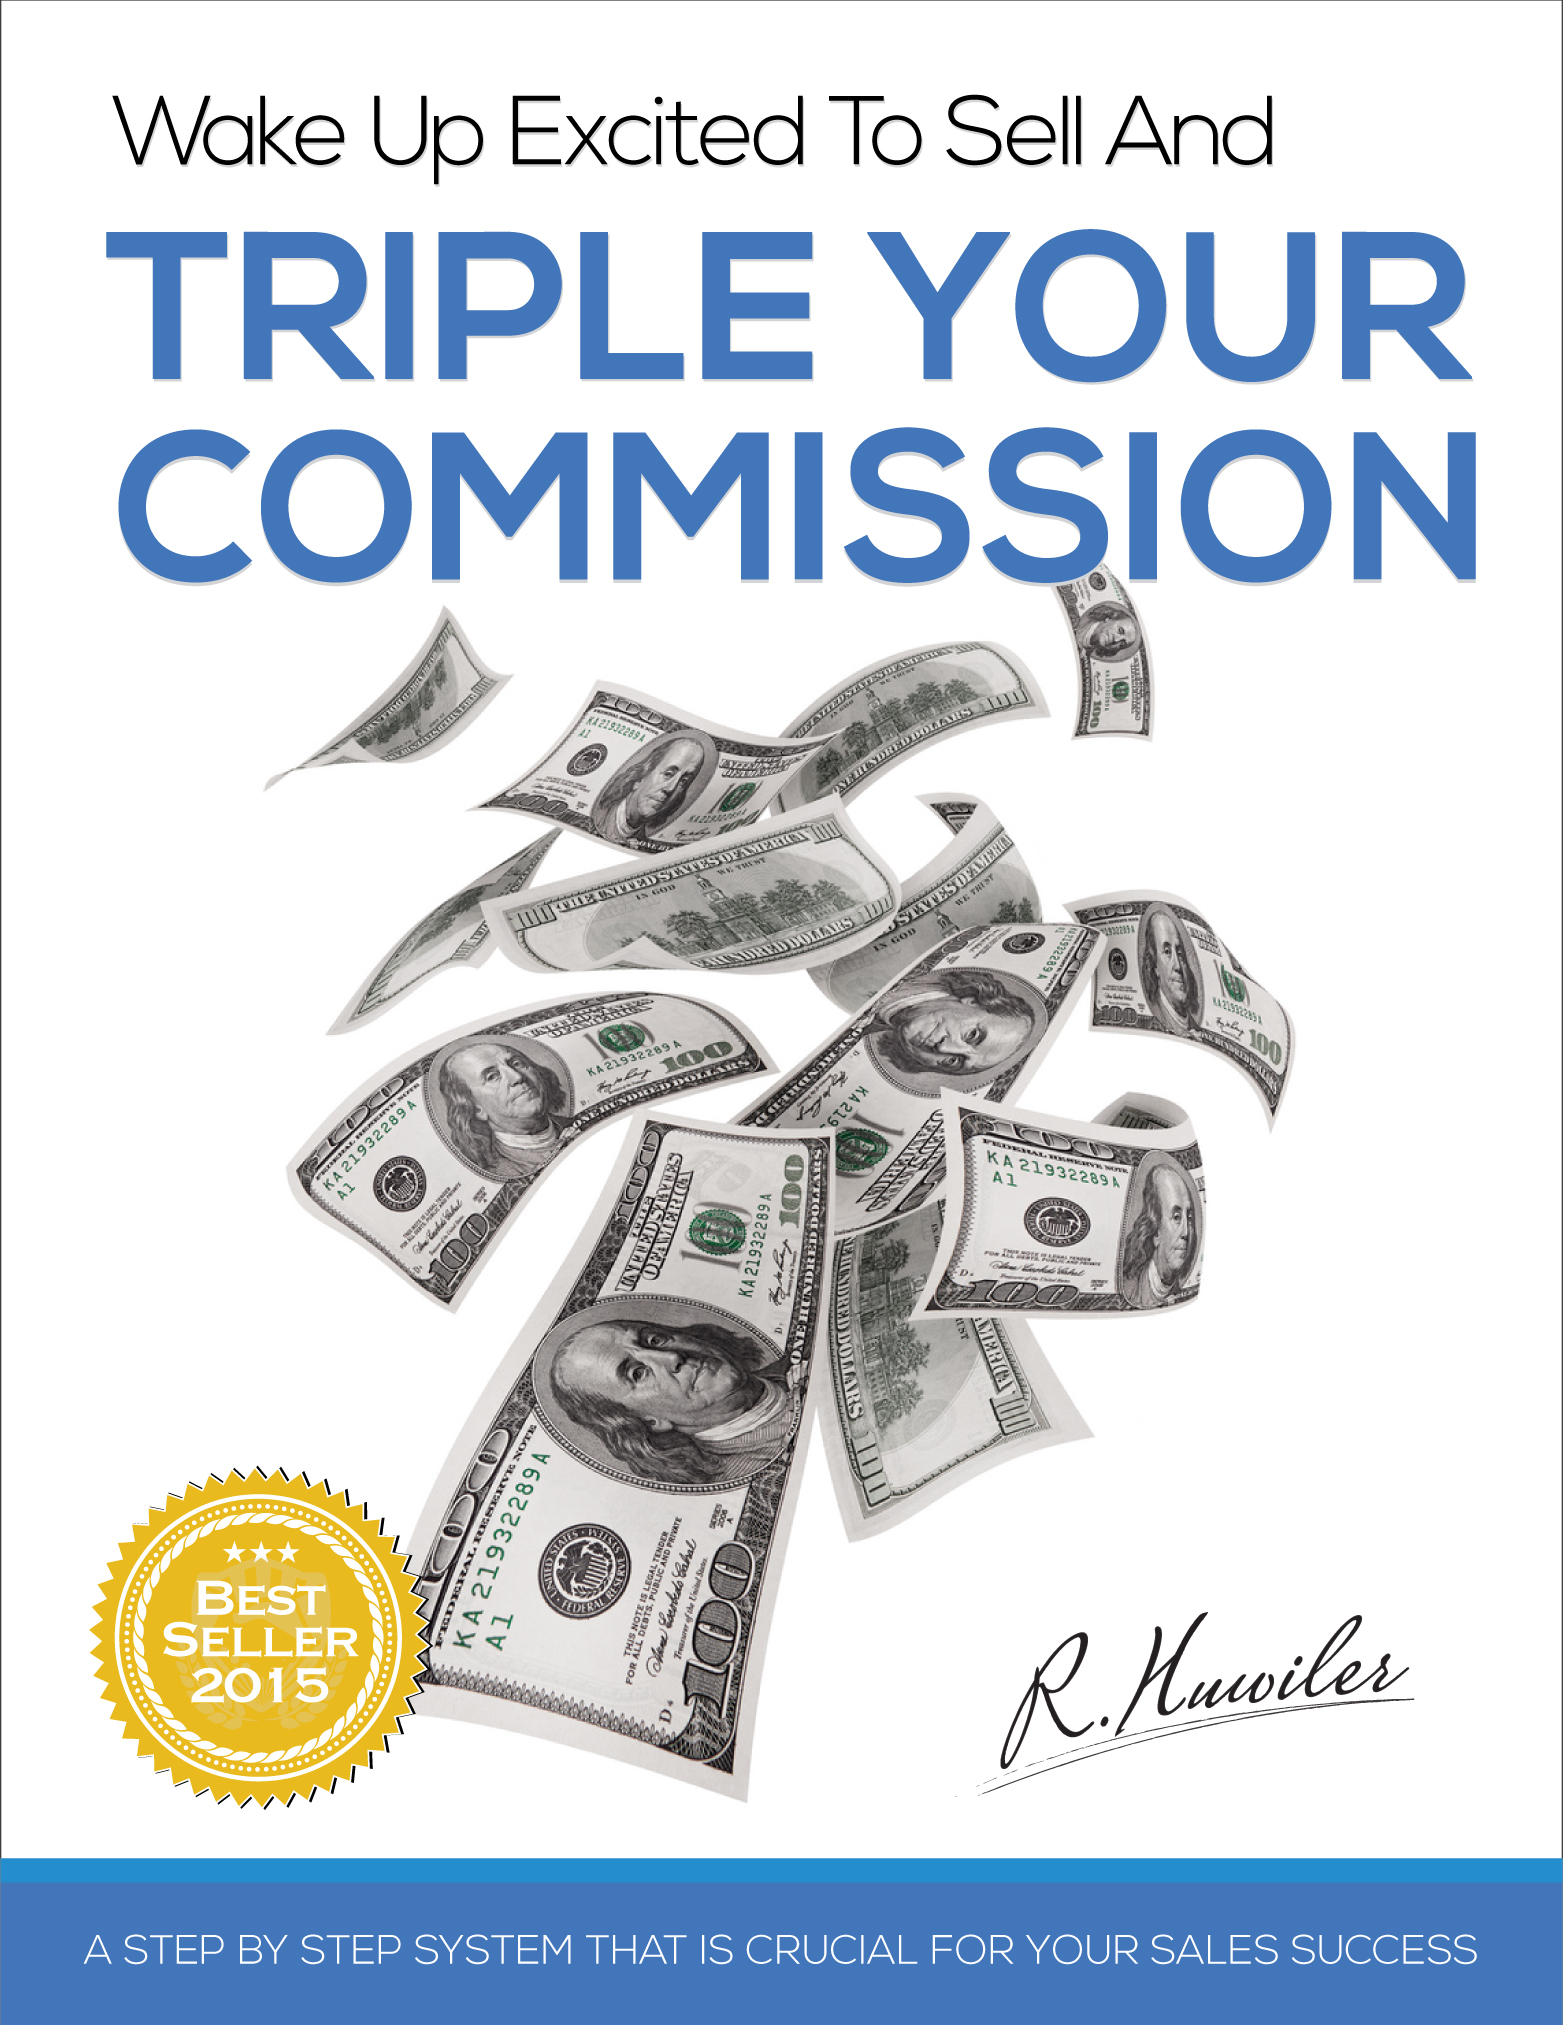 Wake Up Excited To Sell And Triple Your Commission Raphael Huwiler Halifax Nova Scotia Author